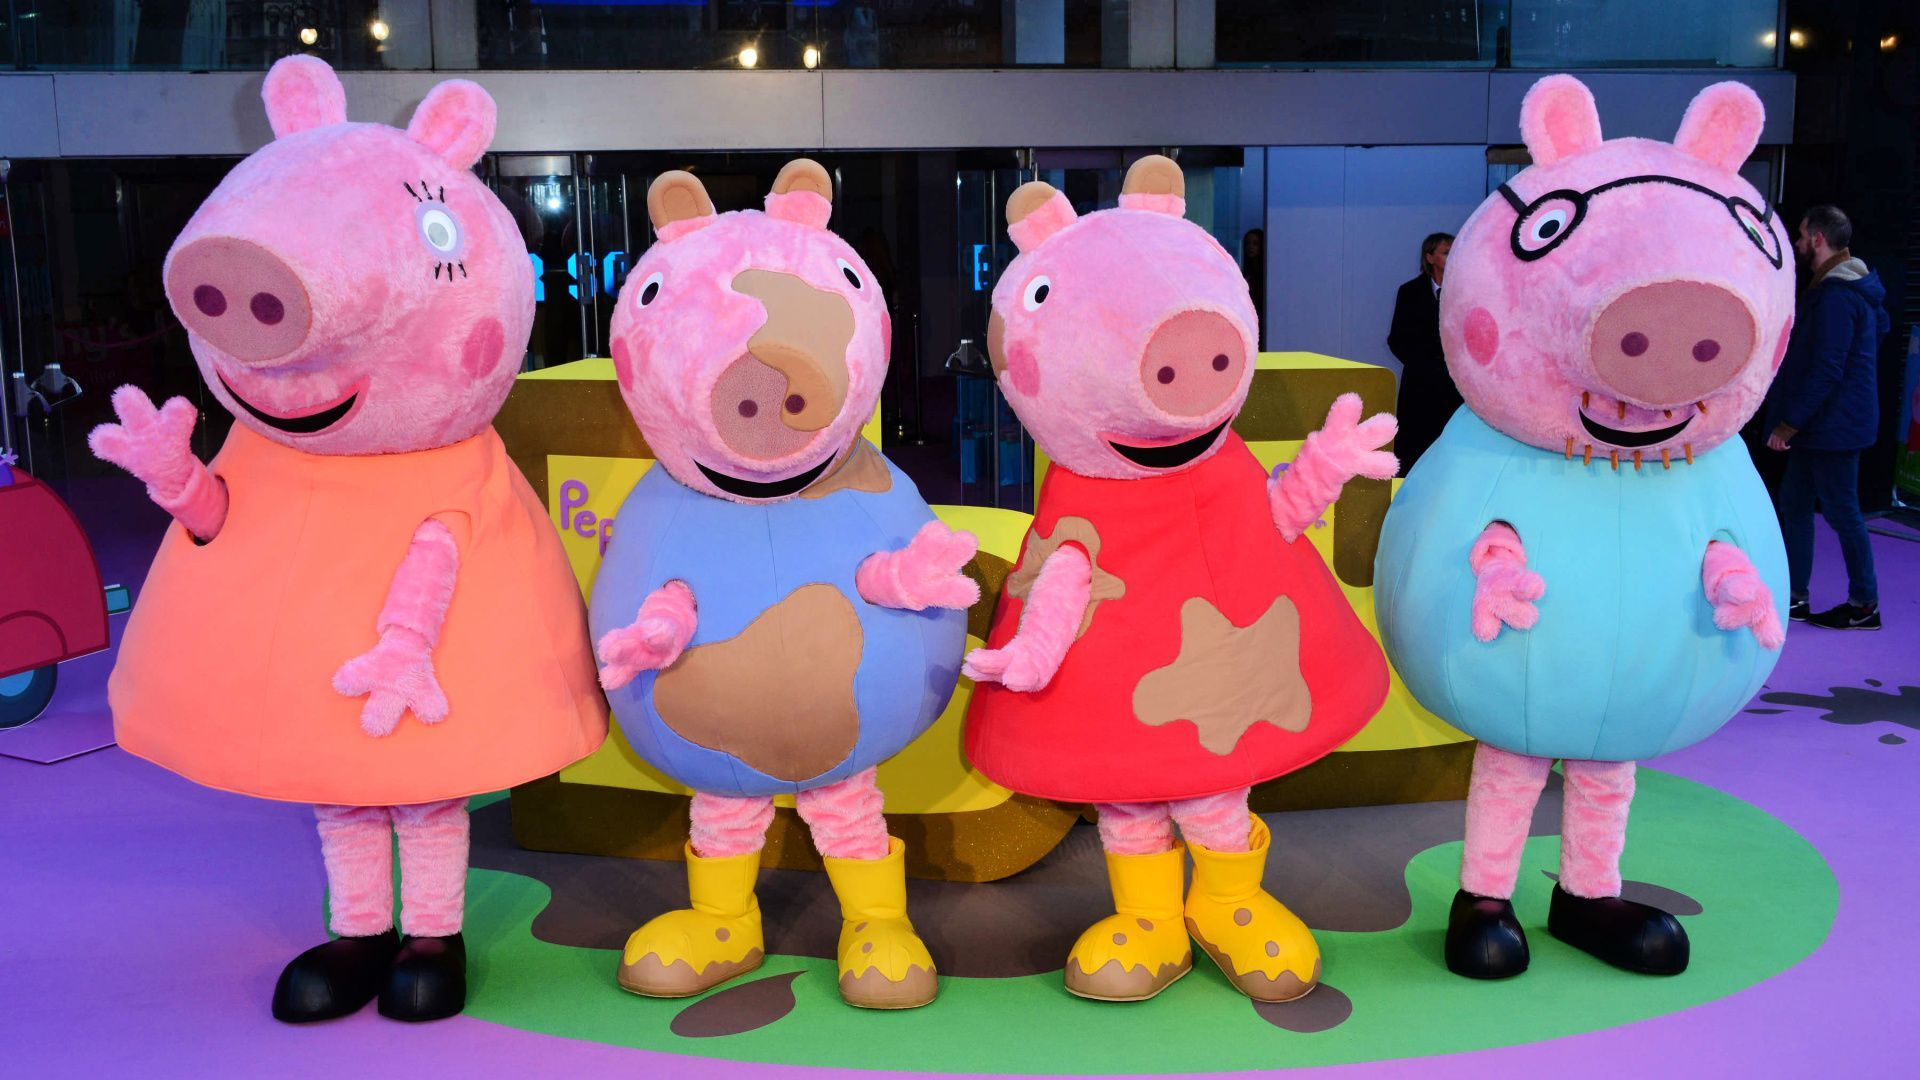 This Hunter x Peppa Pig Collaboration Is Downright Genius